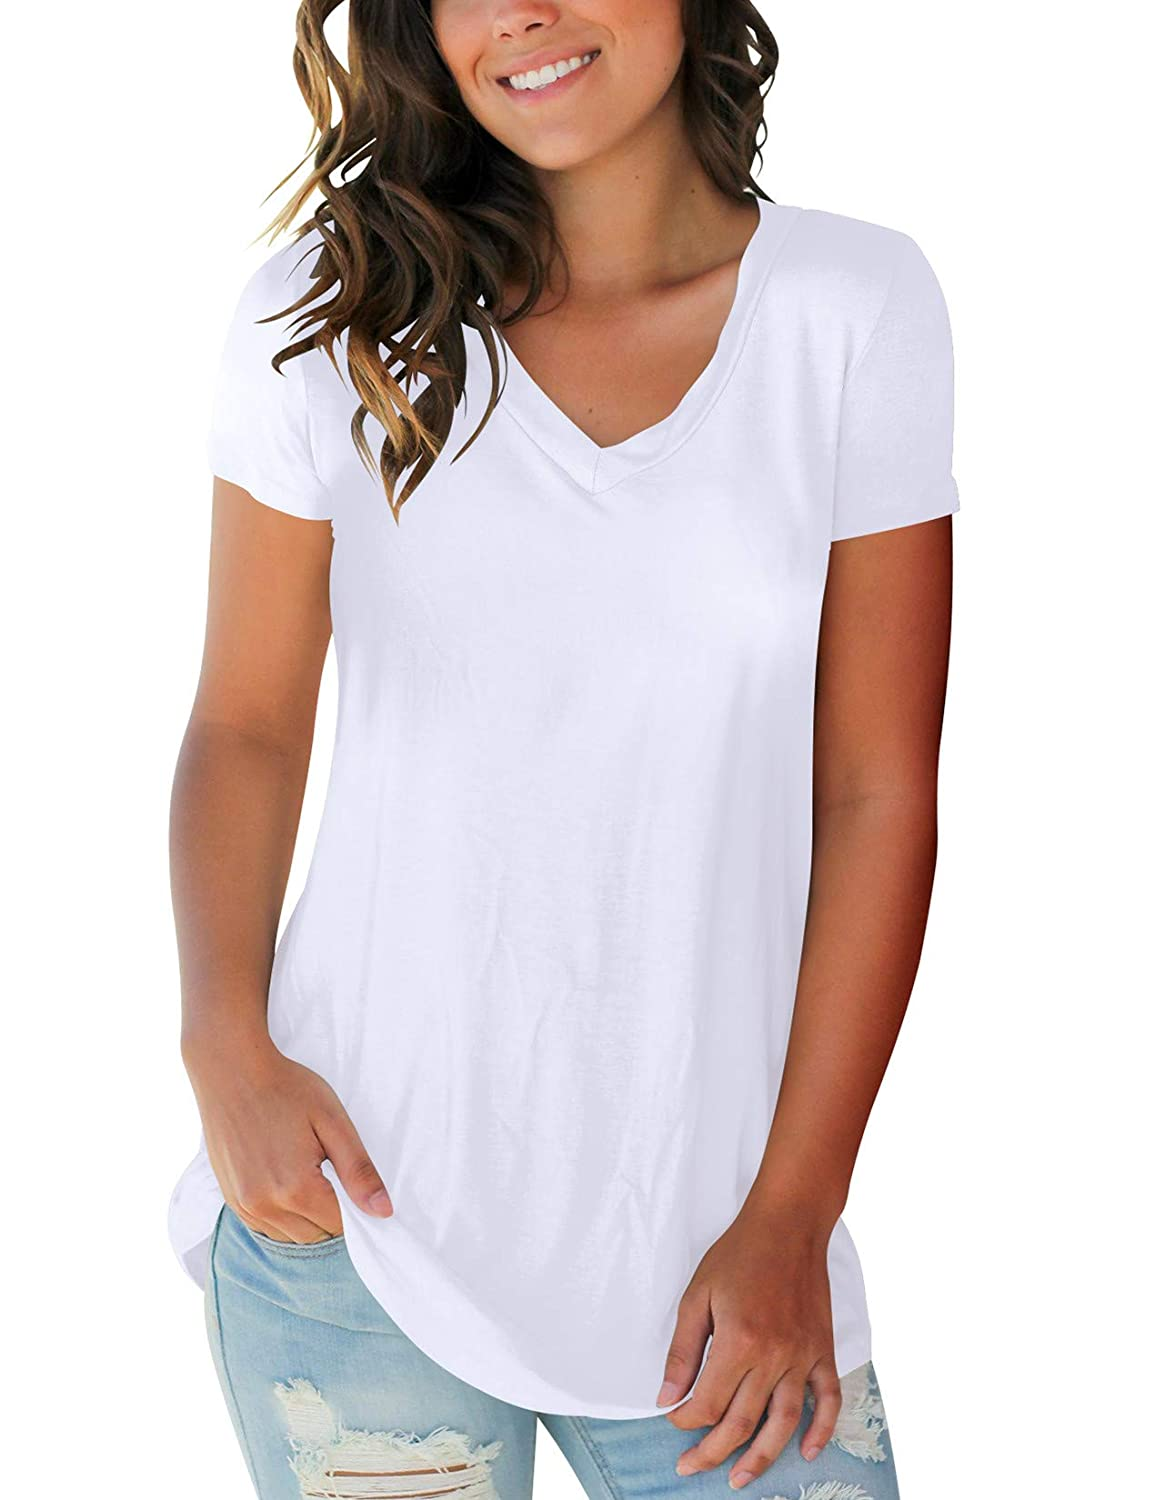 e47dd9346 Women's Tops Short Sleeve V Neck T Shirts Summer Basic Tees with Pocket at  Amazon Women's Clothing store: